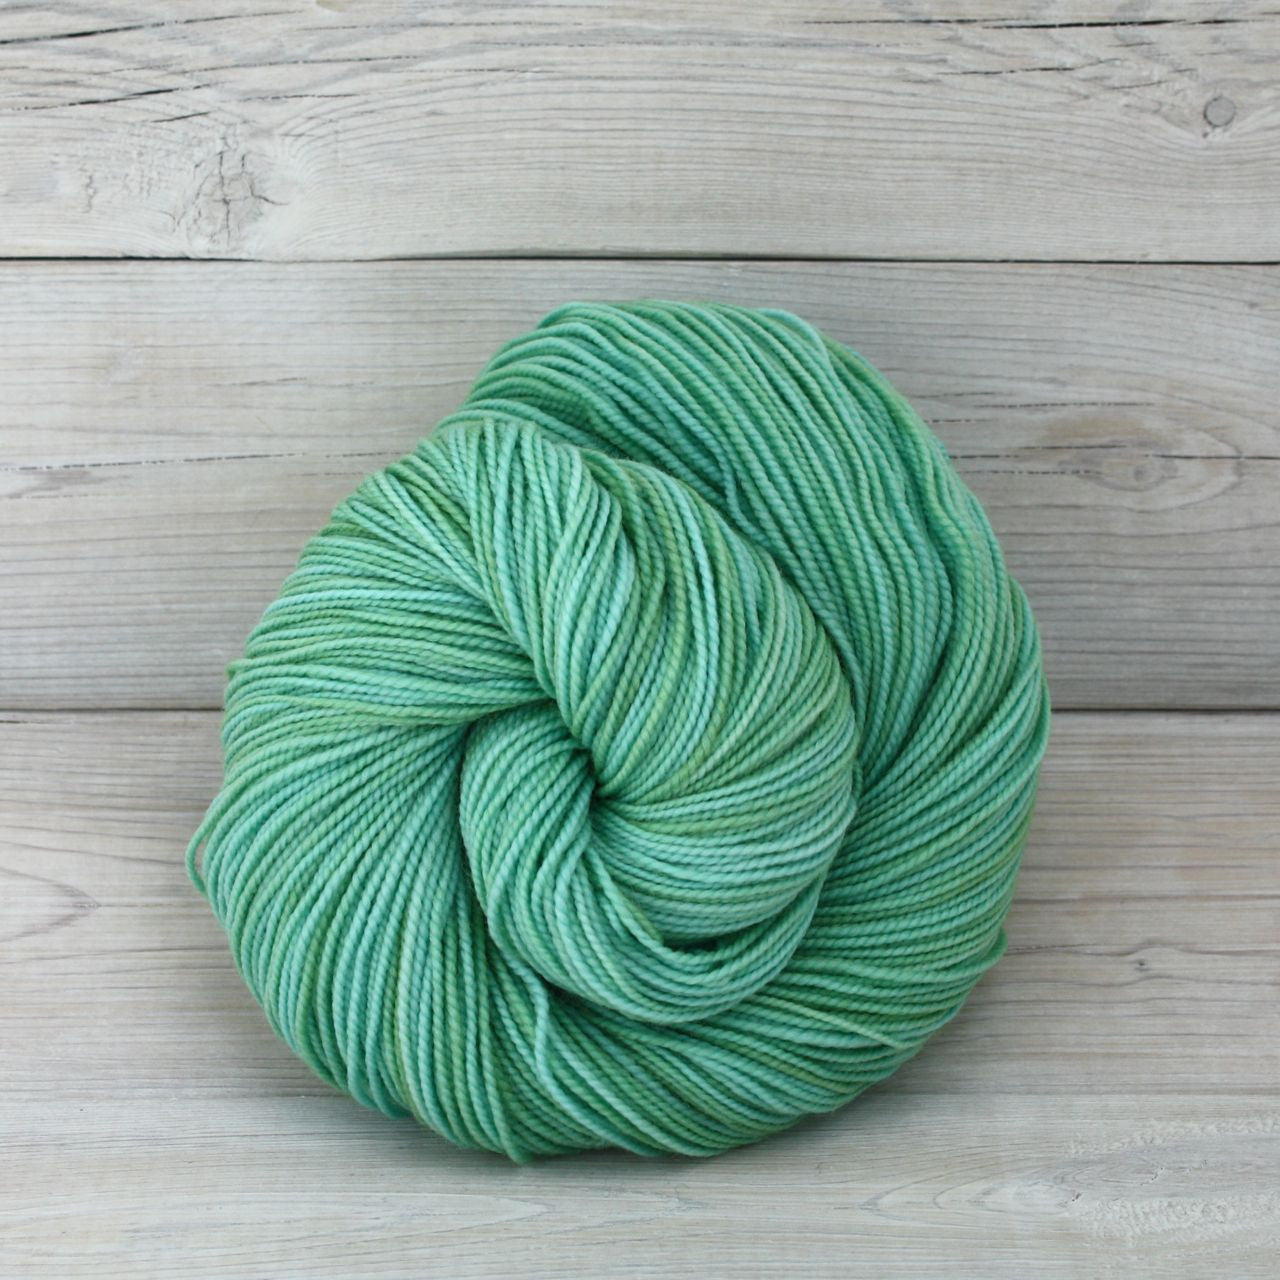 Luna Grey Fiber Arts Celeste Yarn | Colorway: Sea Glass